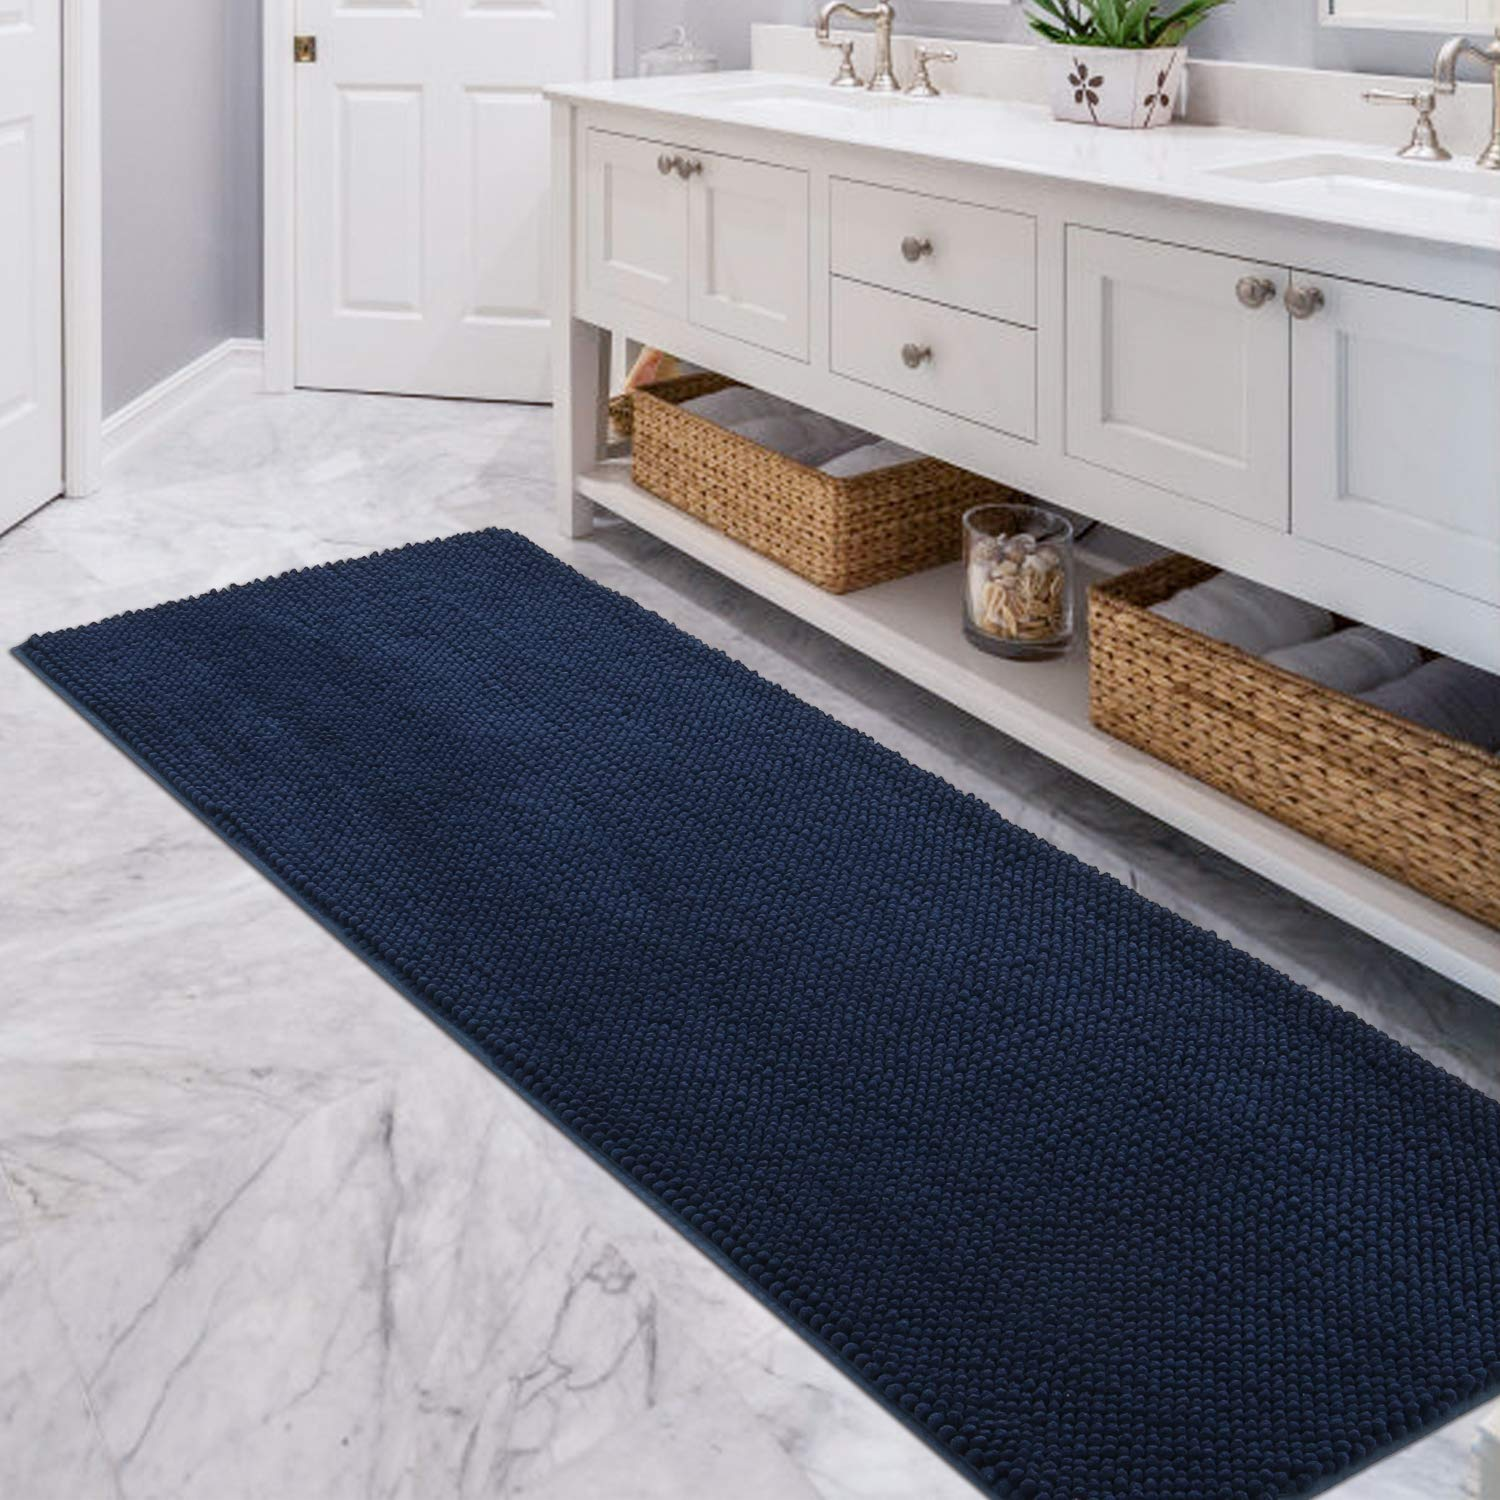 22 x 511 Brown Lifewit Bath Runner Rug Chenille Area Mat Rugs for Bathroom Kitchen Entryway Bedroom Machine Washable Water Absorbent with Non-Slip Rubber Collection Shag Rug